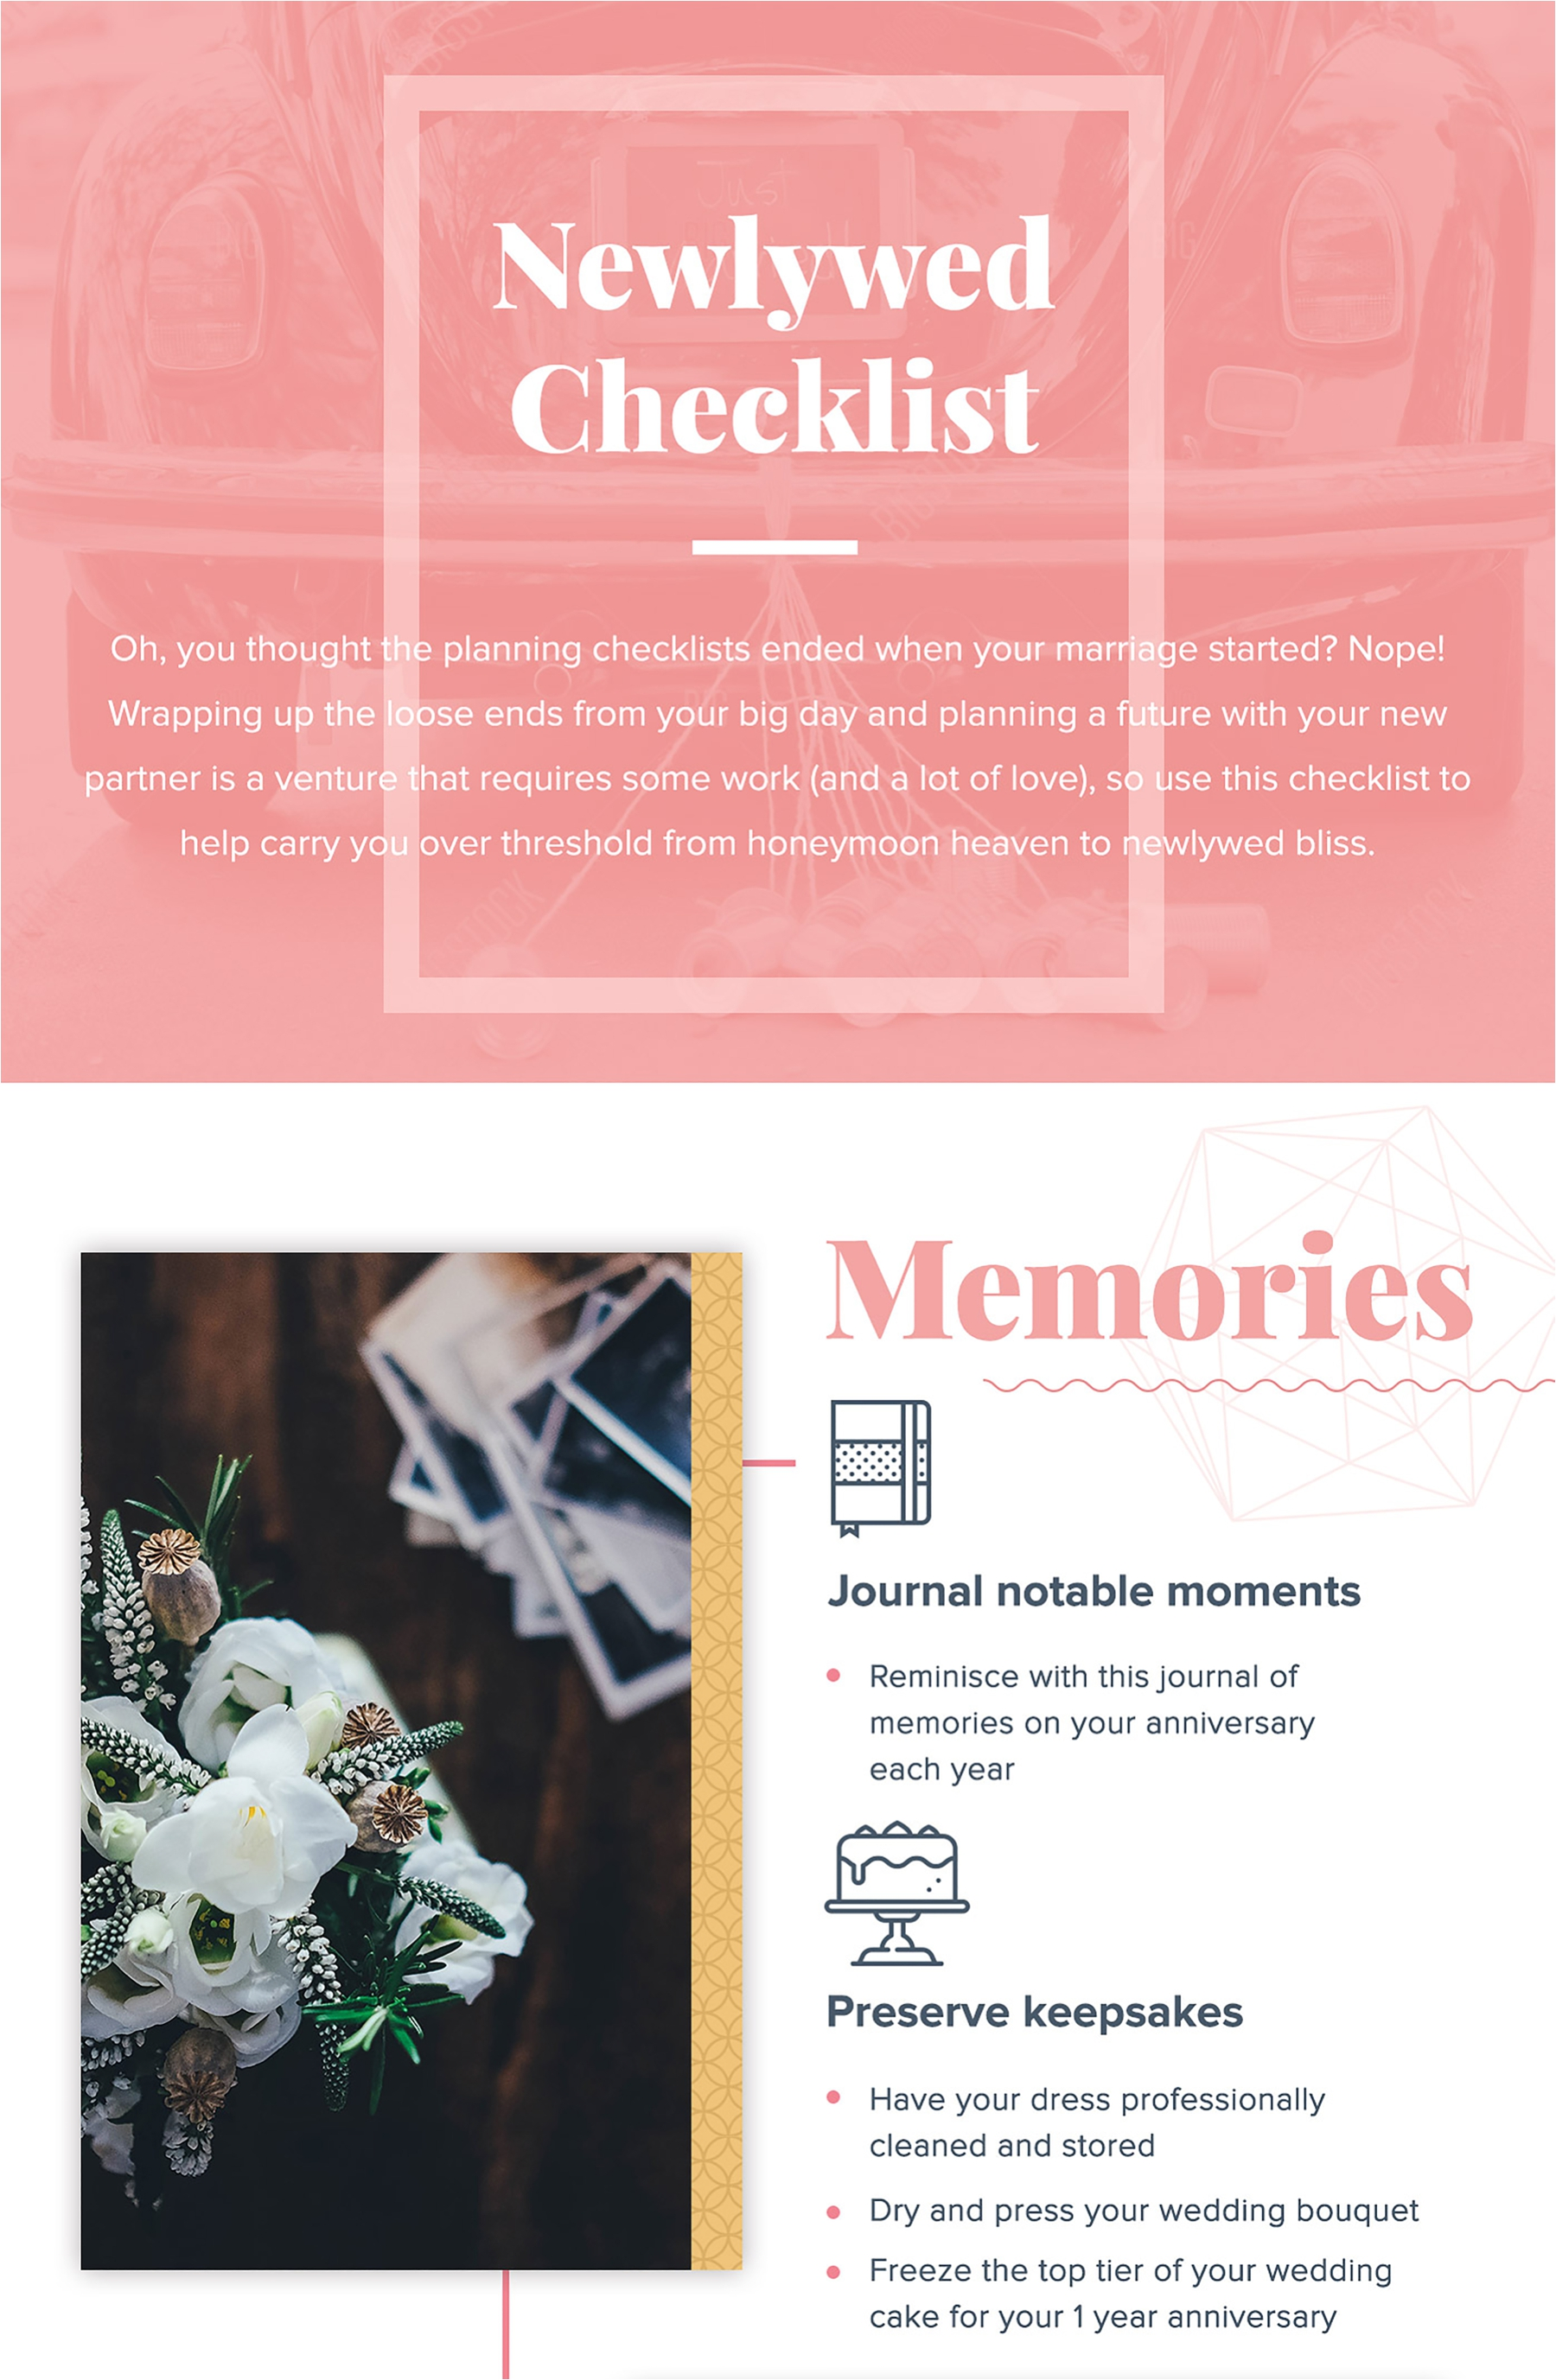 After the Cake: A Checklist for Newlywed's